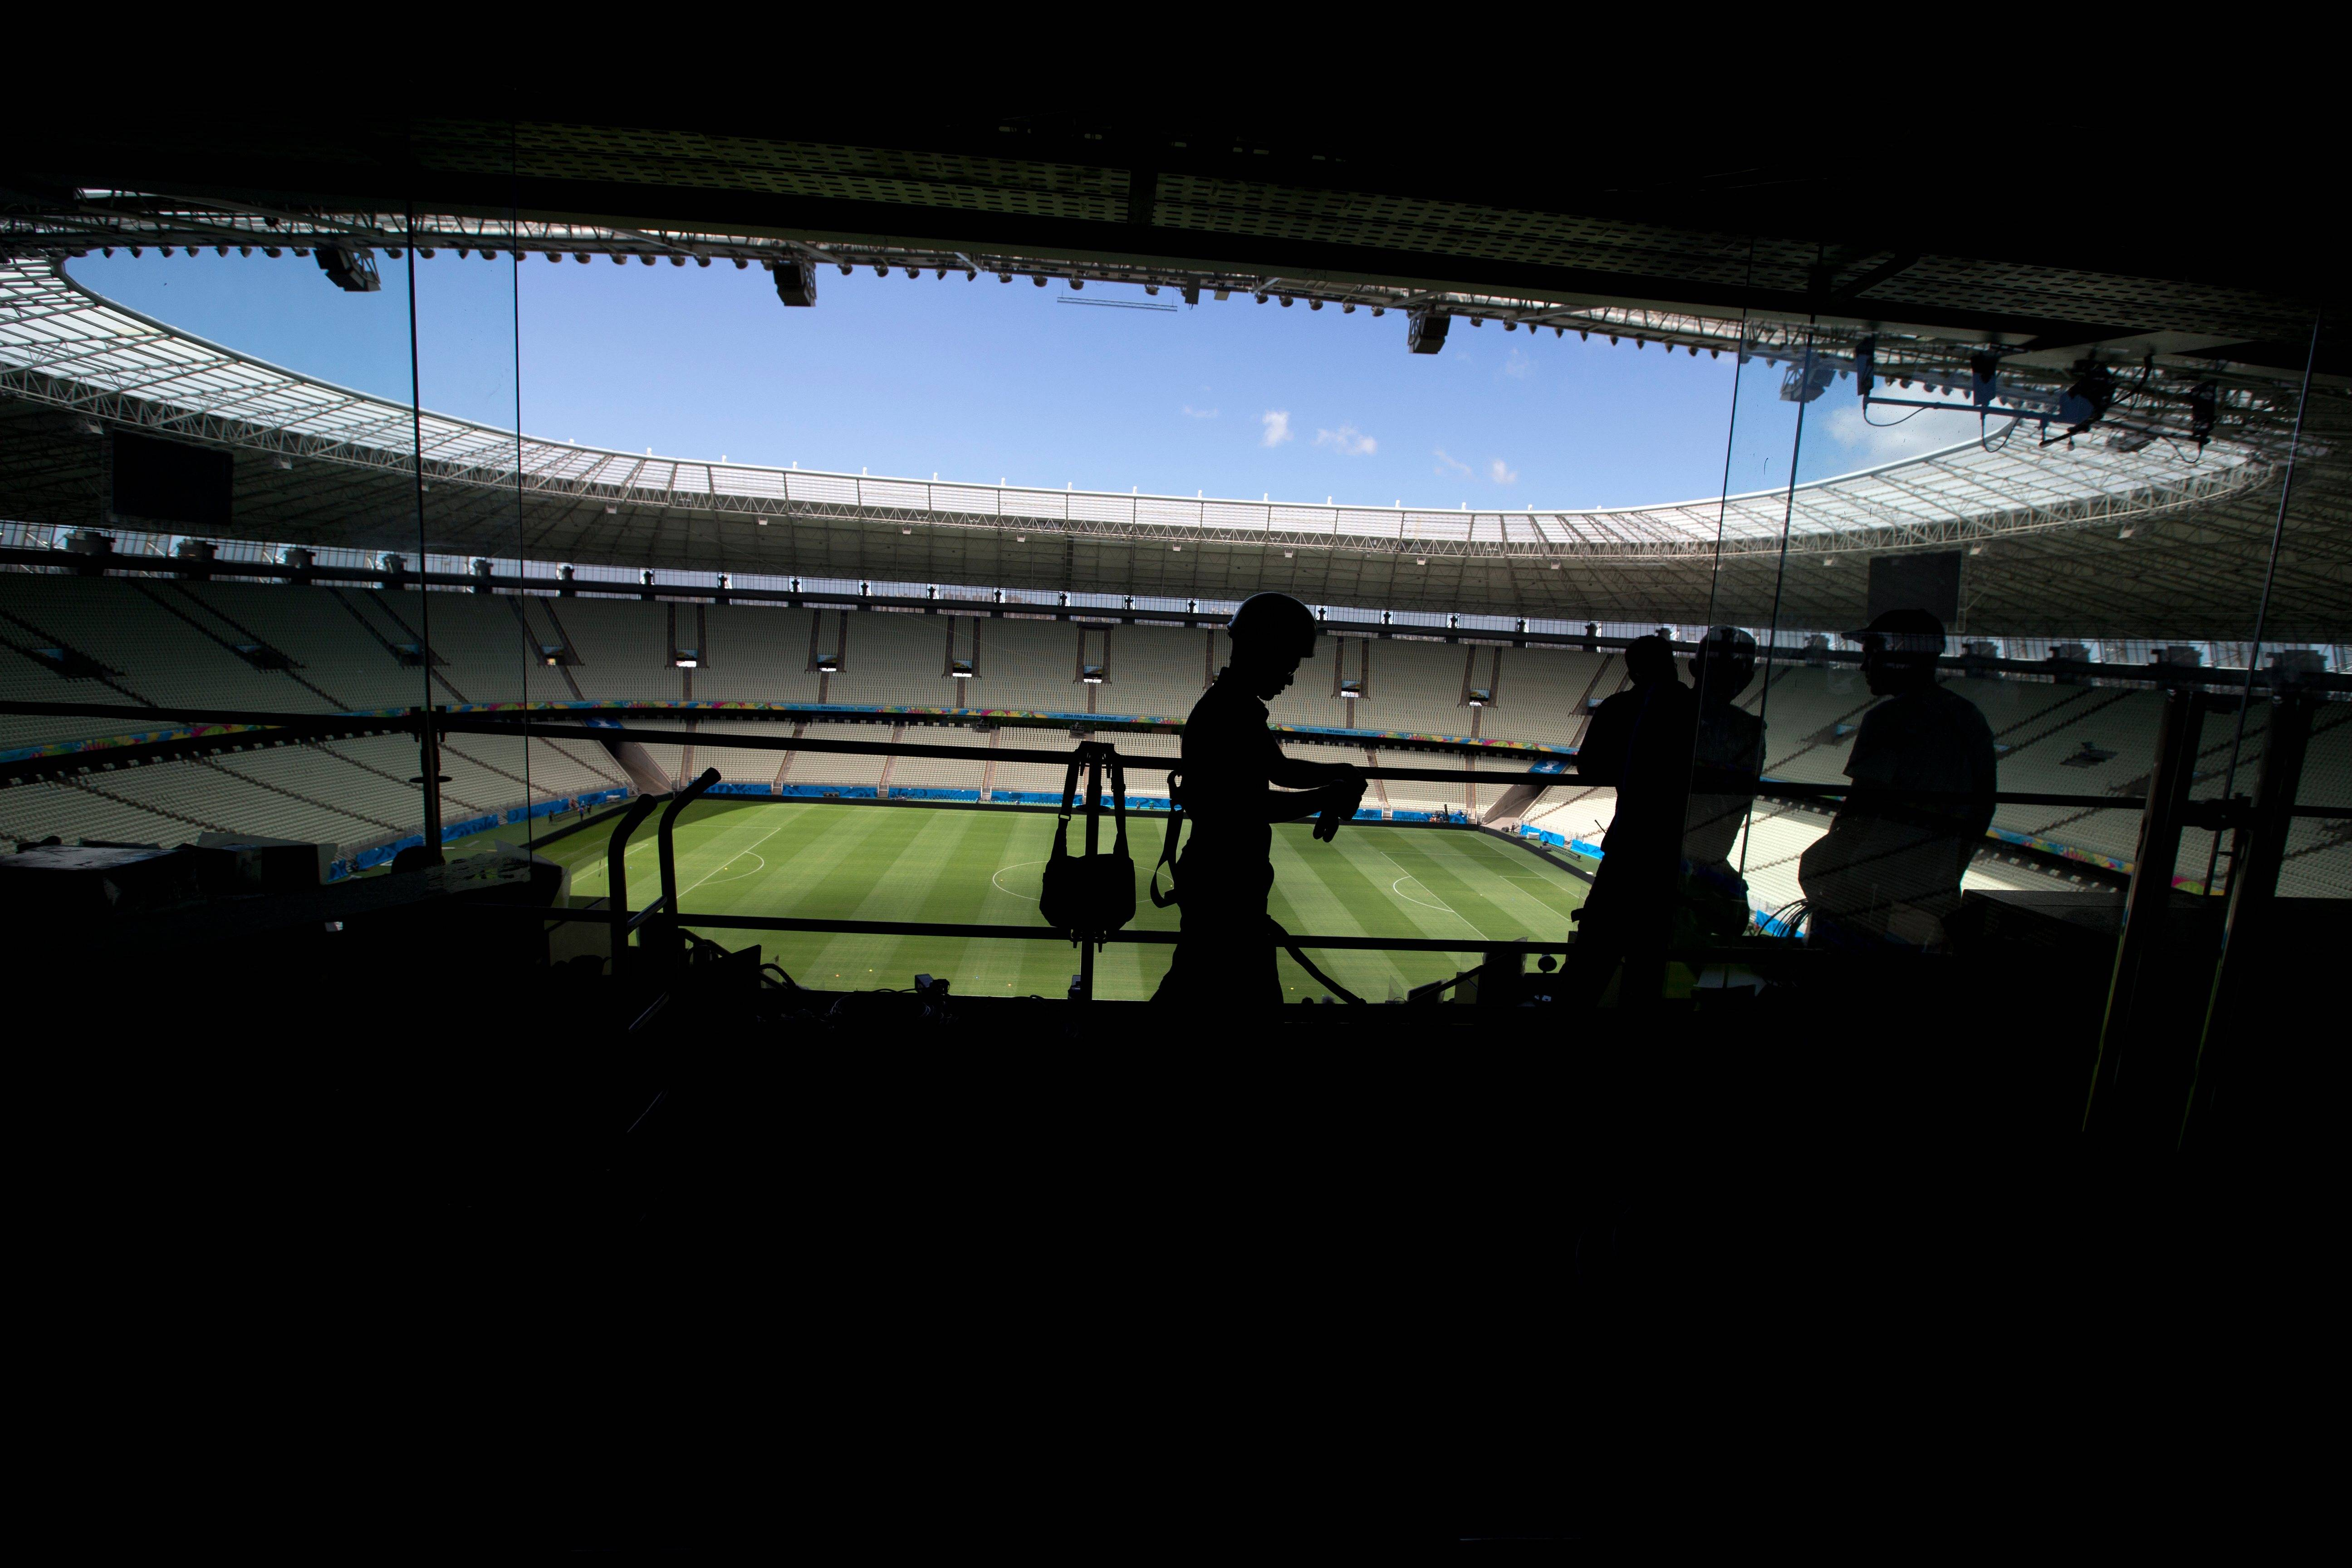 Workers put the final touches in the press box Monday at the Arena Castelão in Fortaleza, Brazil. The Brazil 2014 World Cup soccer tournament is set to begin in just a few days.